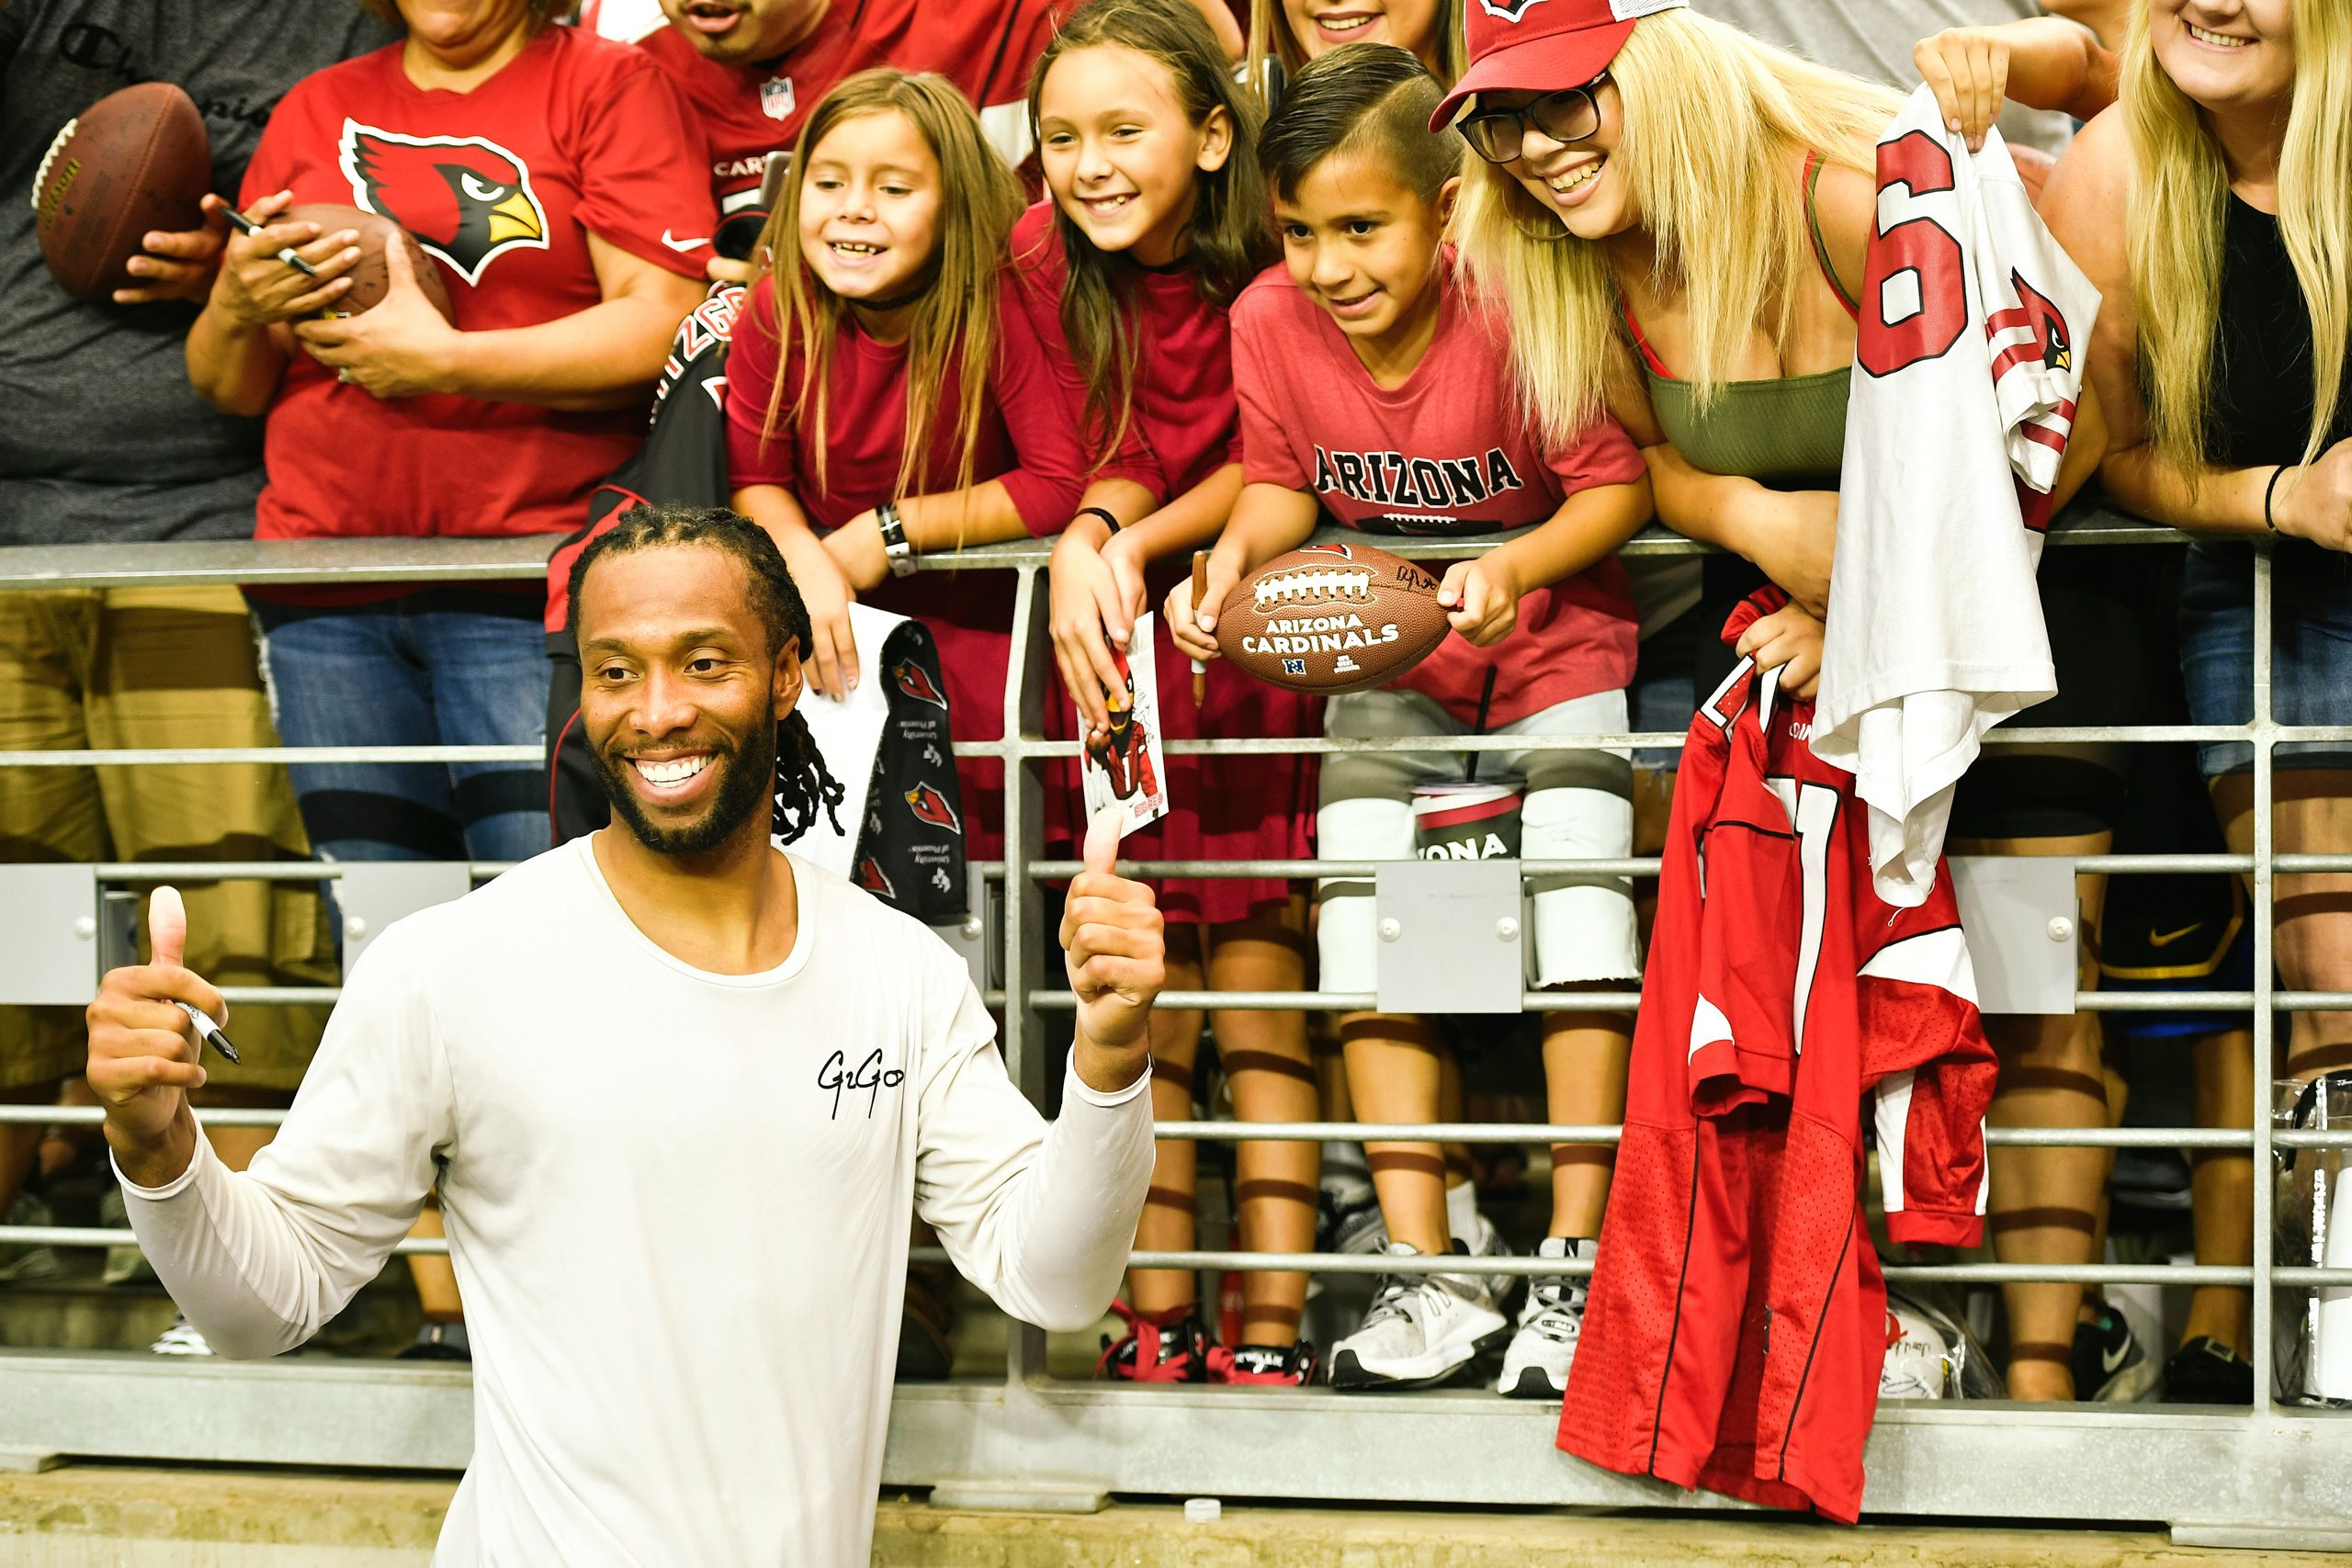 Larry Fitzgerald Signing Fan Autographs at 2019 Cards Training Camp